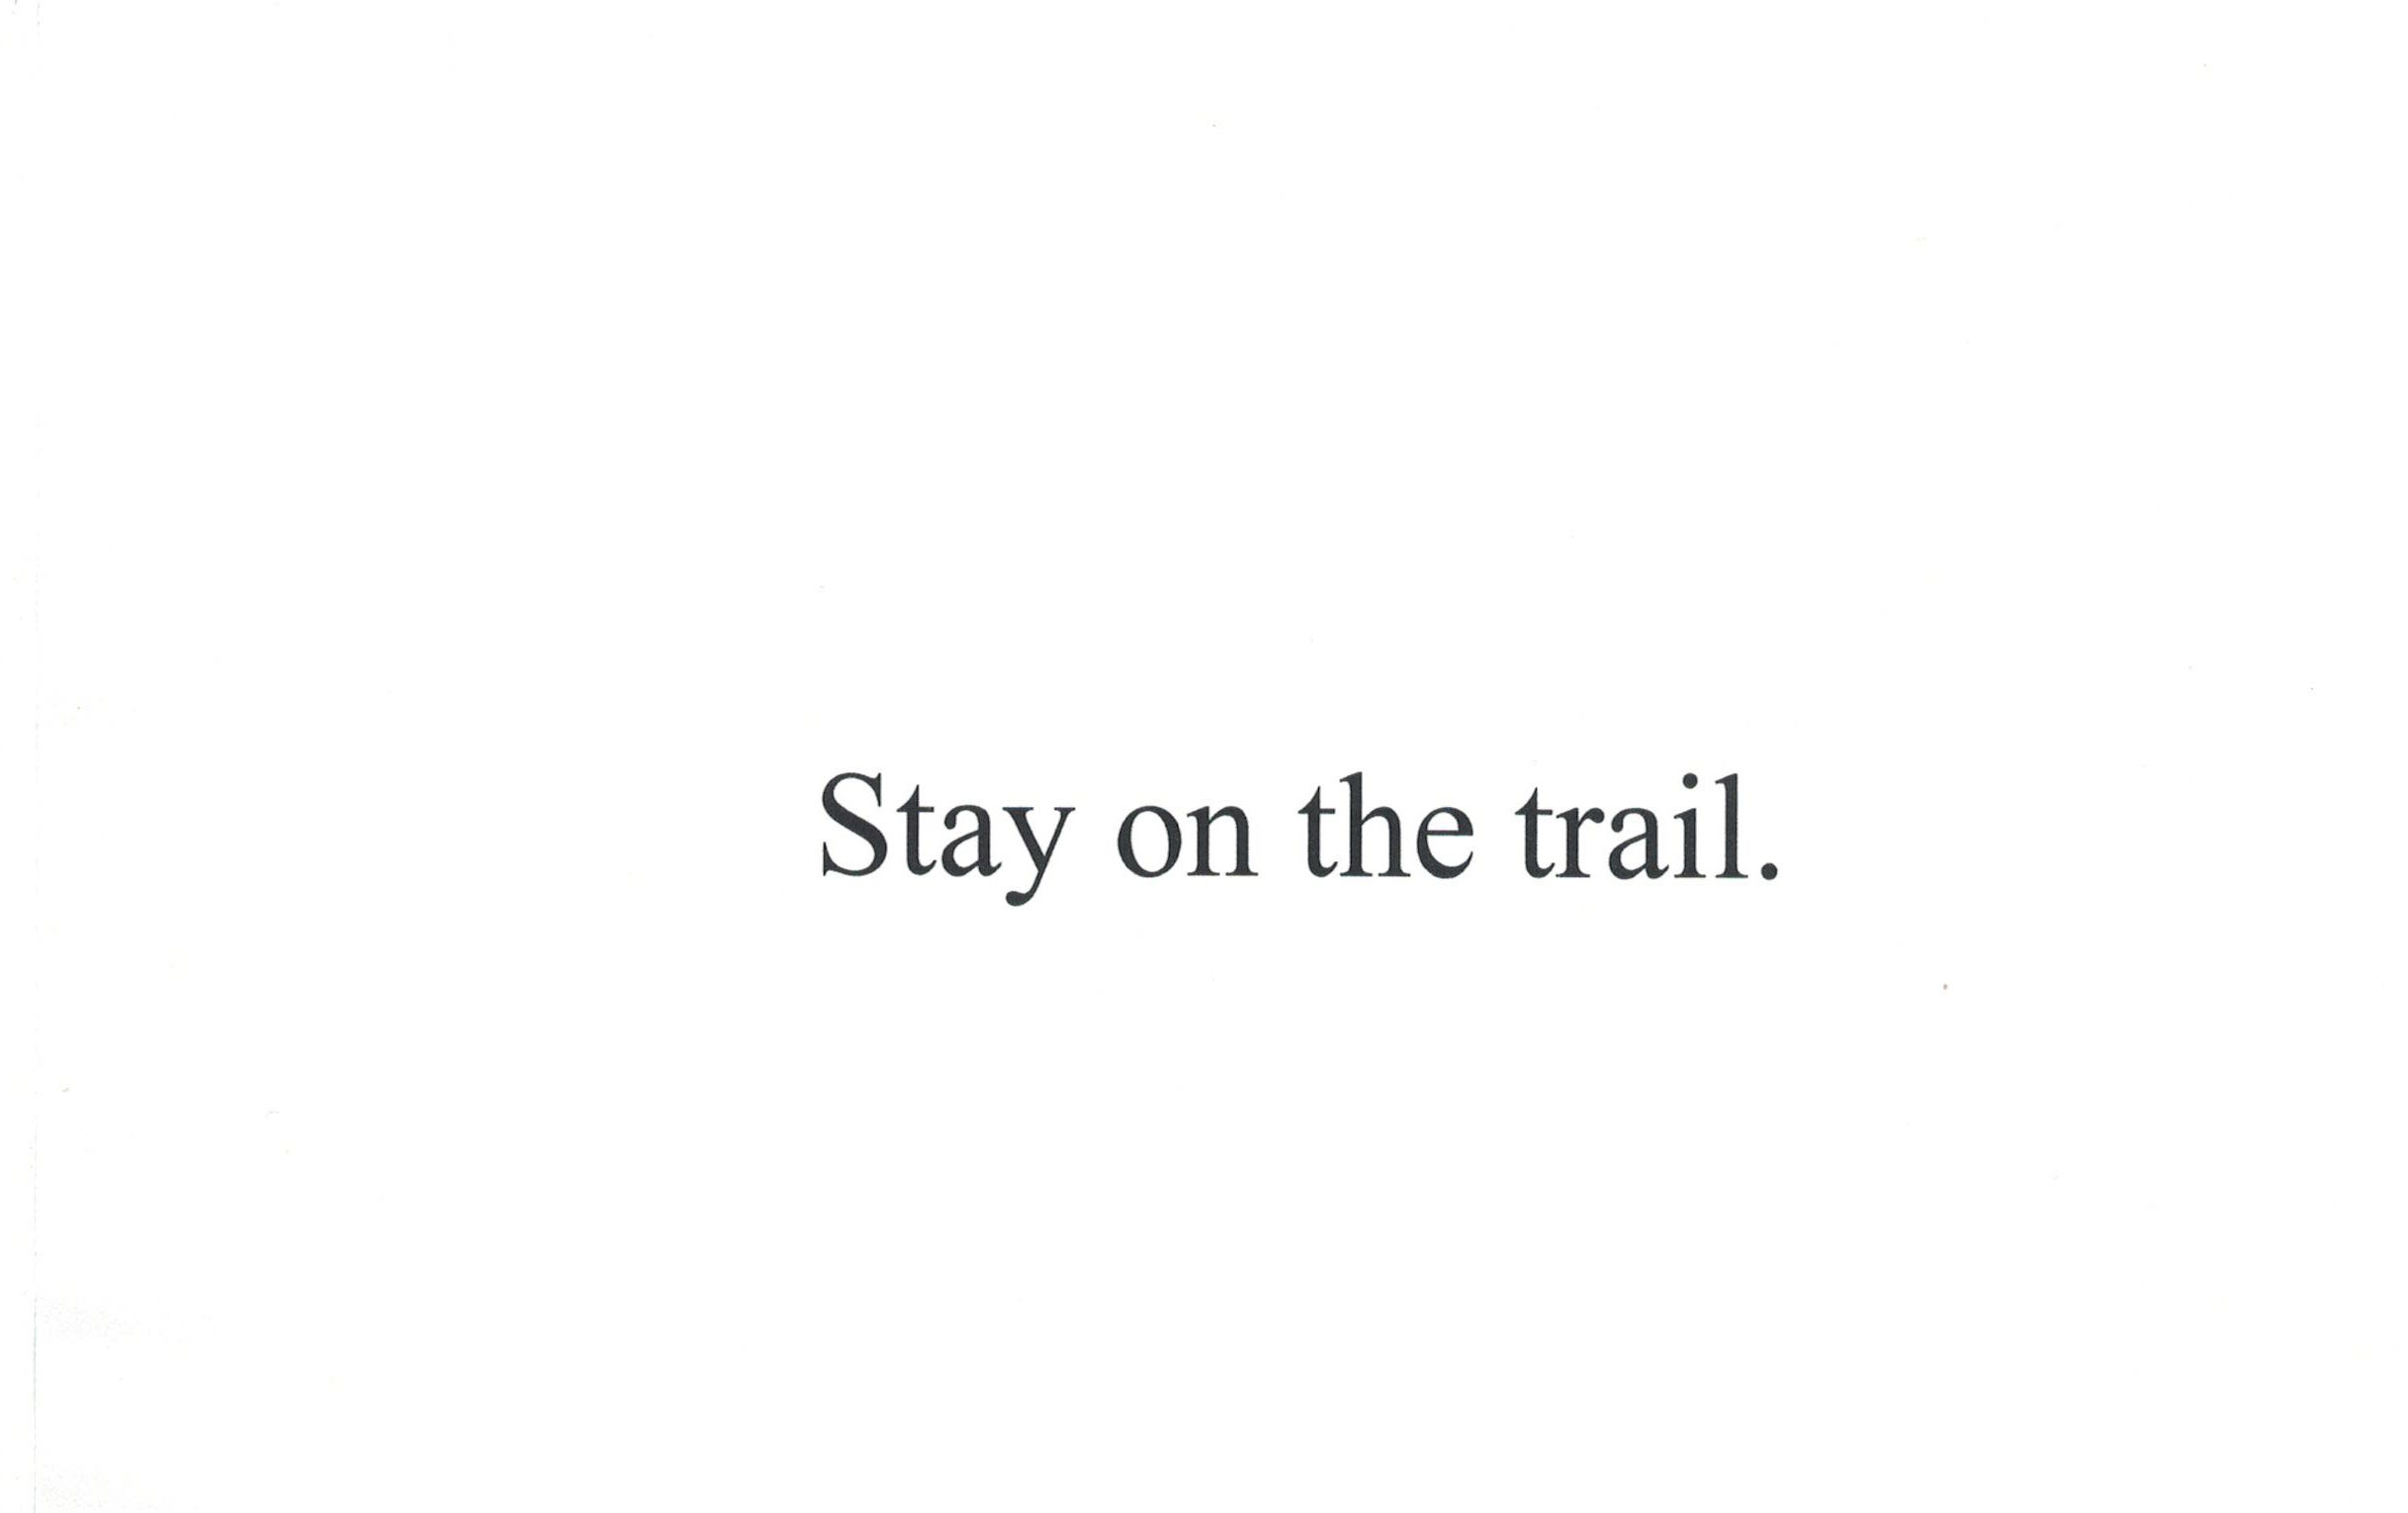 Stay on the trail.